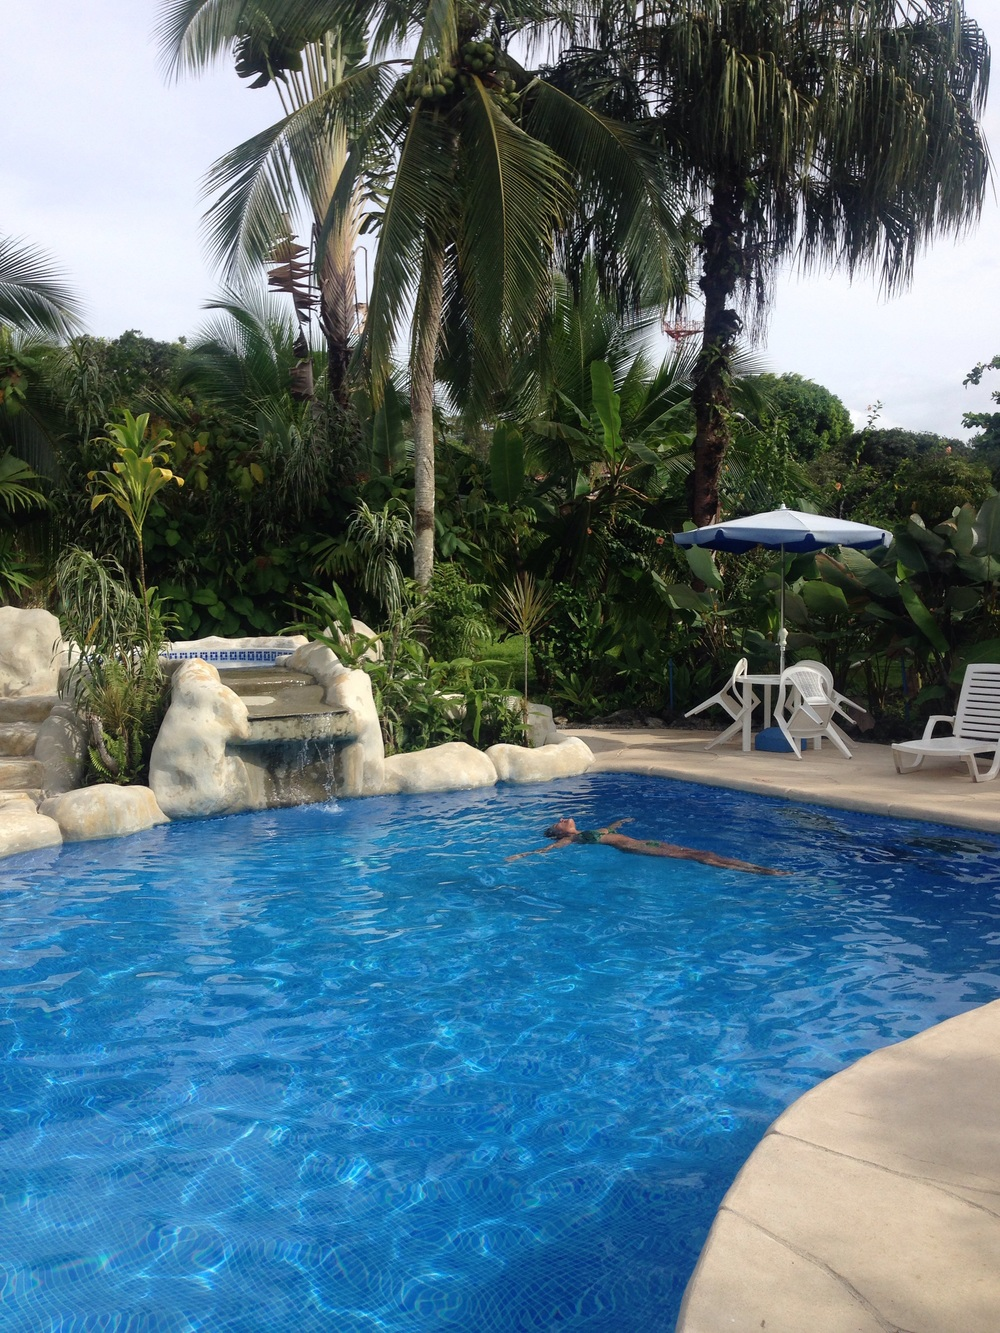 The  Casa Verde Lodge  has the most beautiful pool in Puerto Viejo.